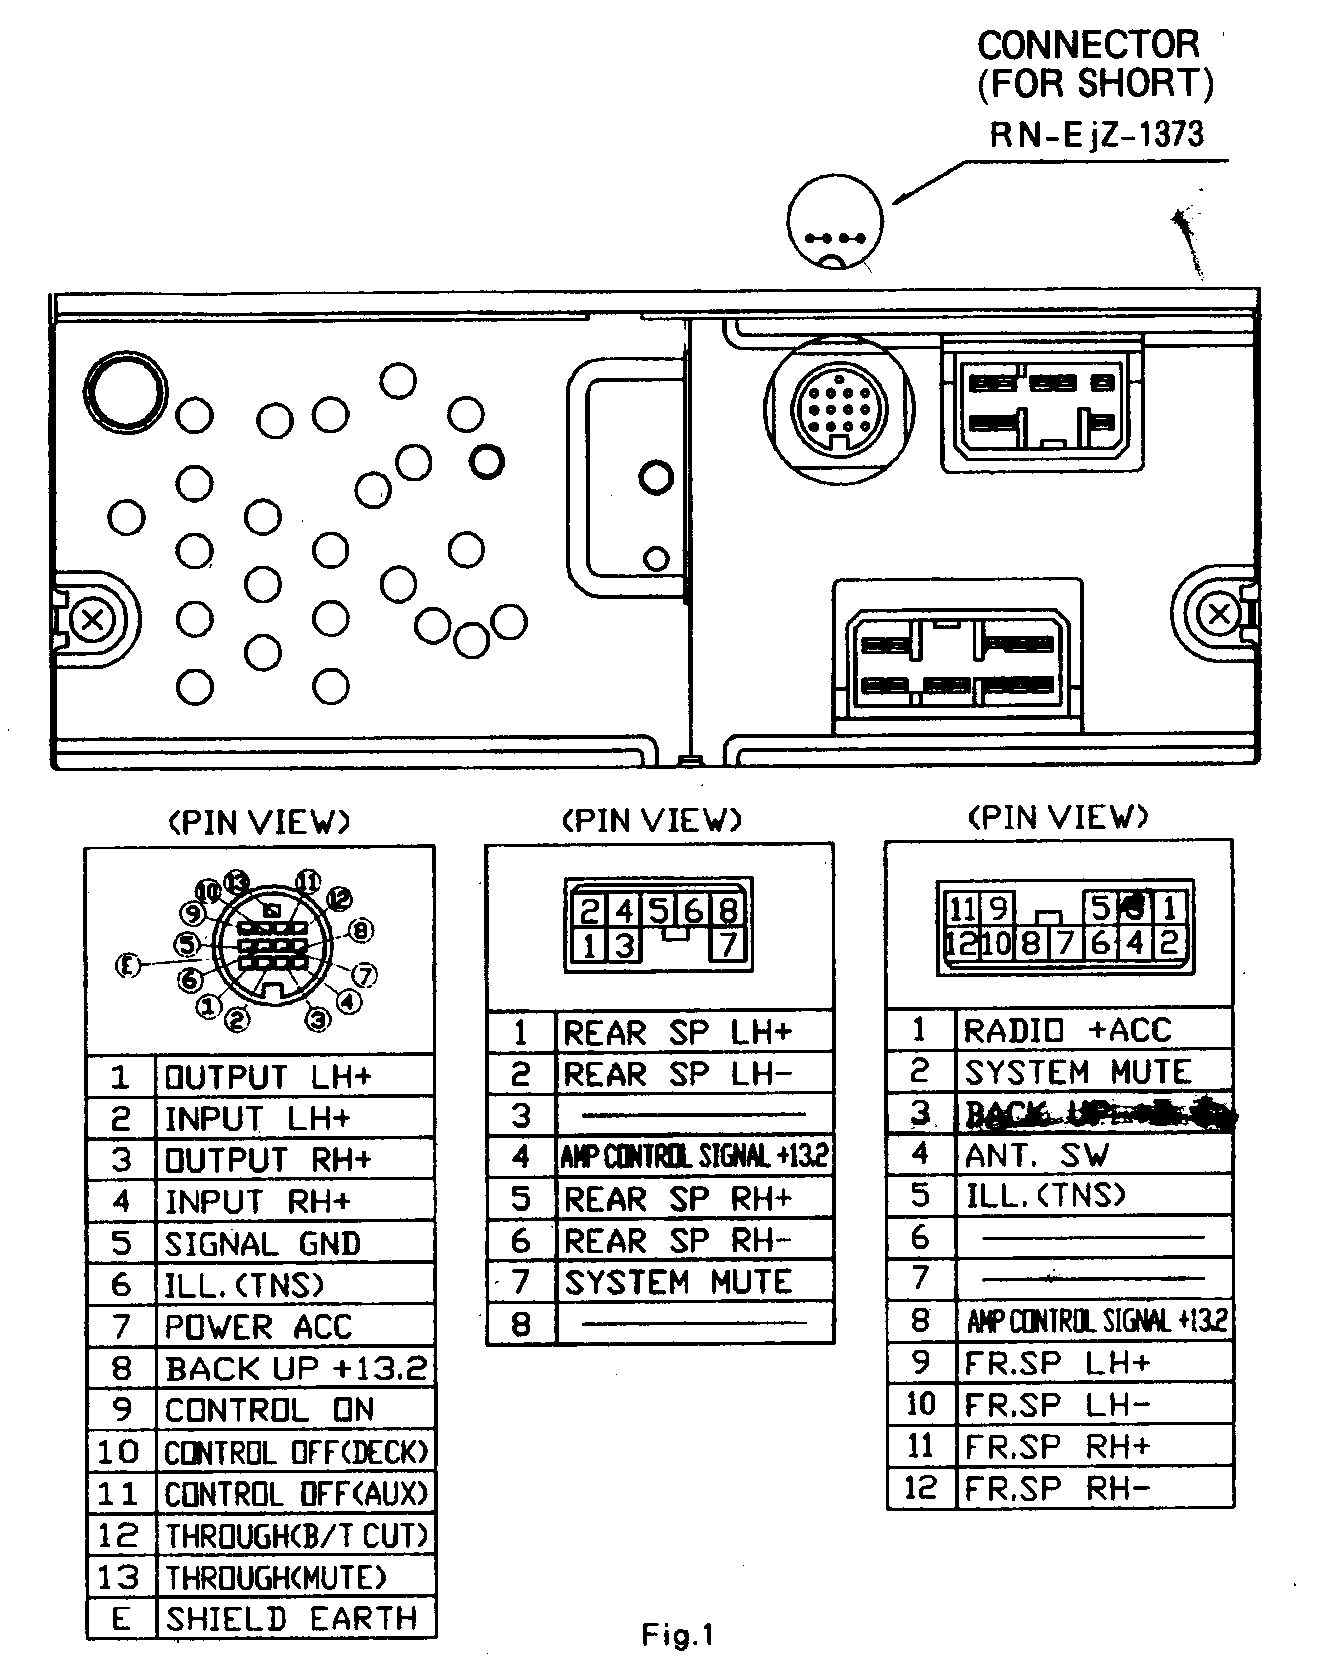 MAZDA Car Radio Wiring Connector on 1949 Cadillac Wiring Diagram